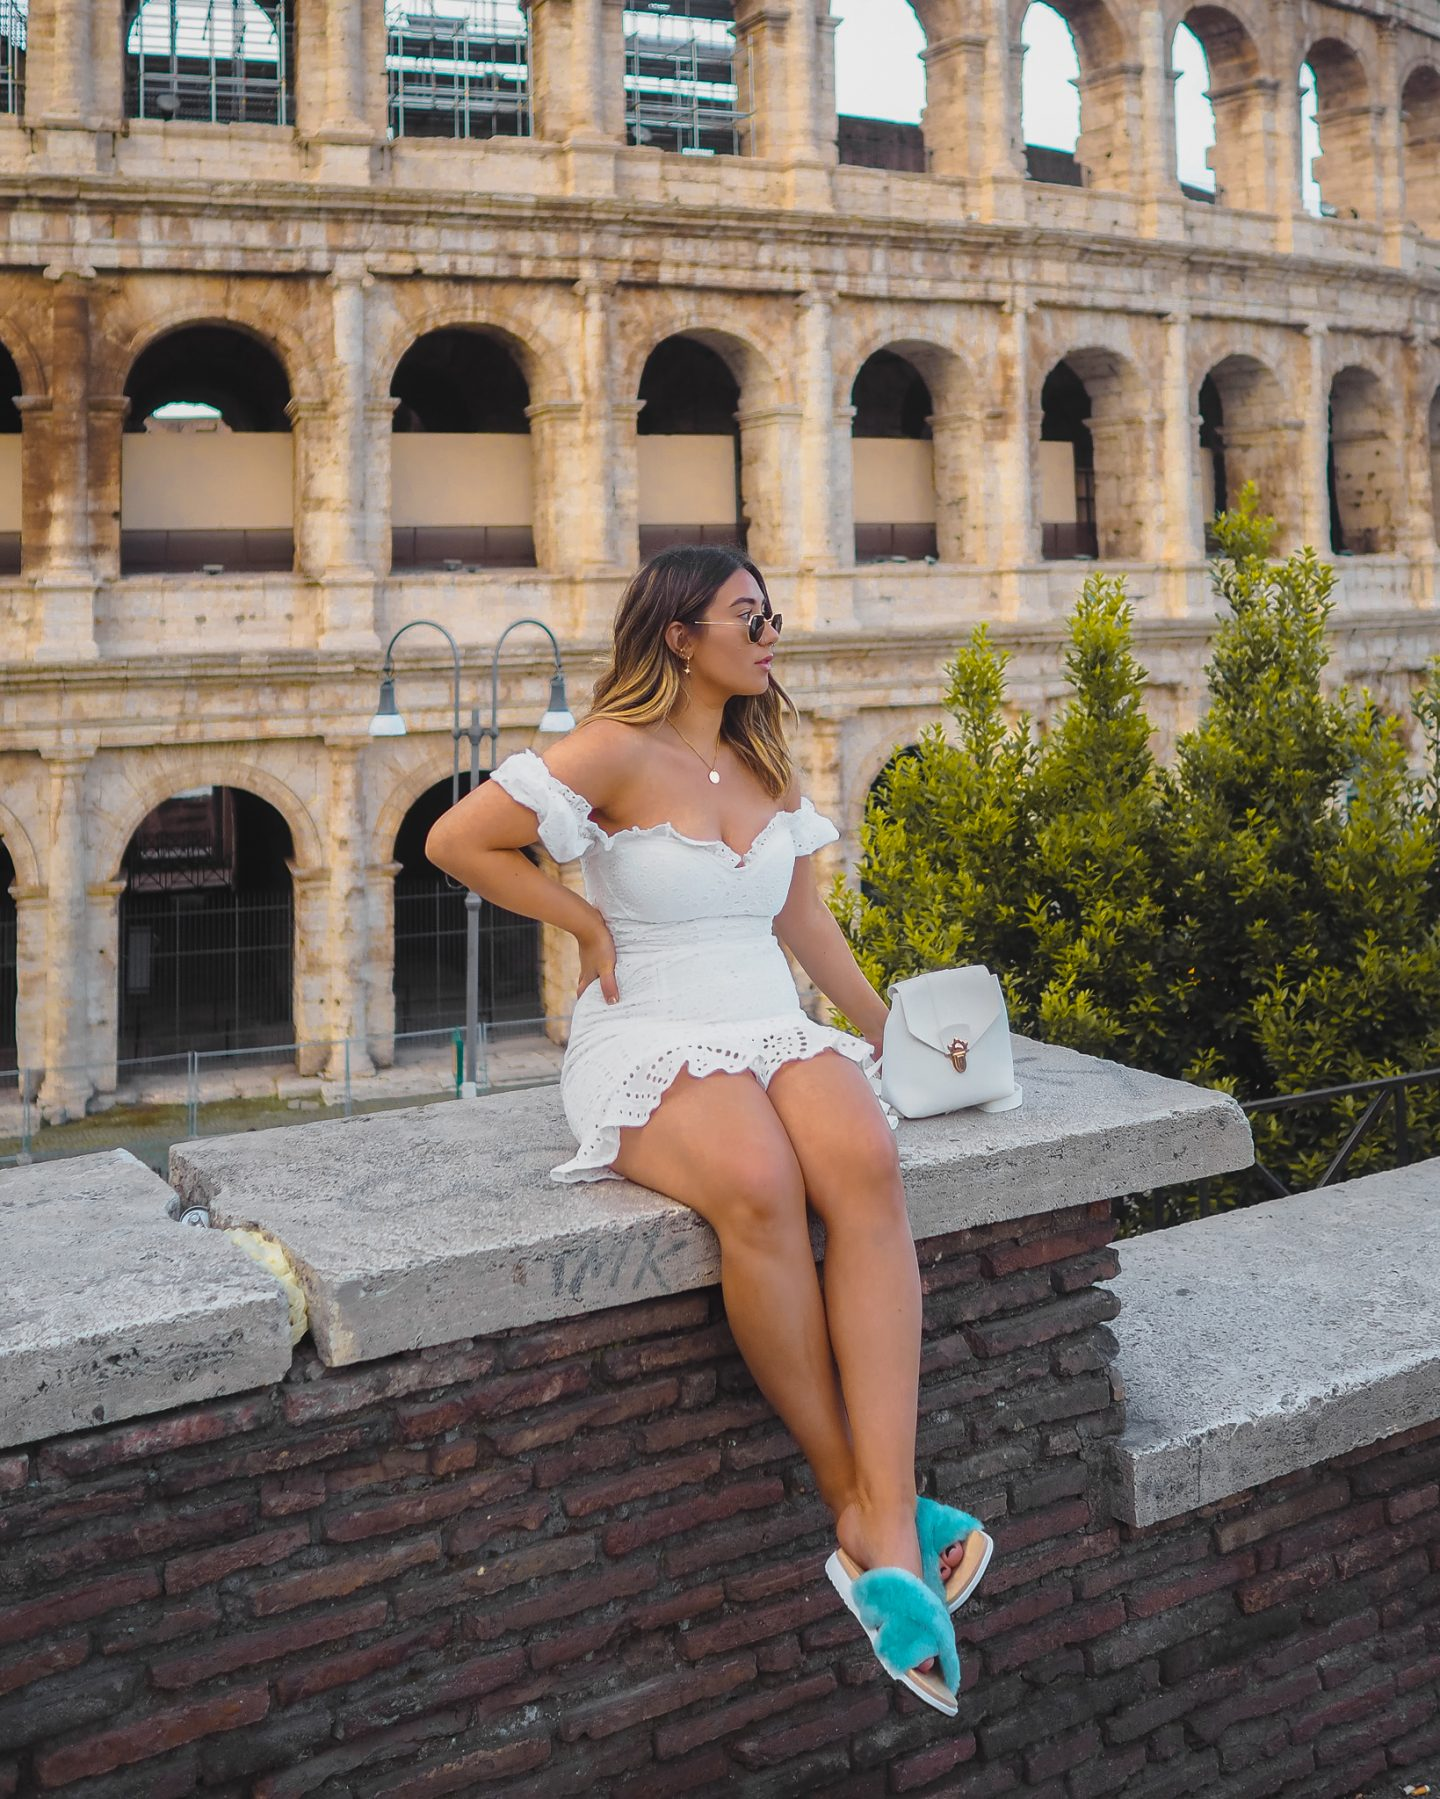 Instagram Location Photo Guide To Rome - The Colosseum